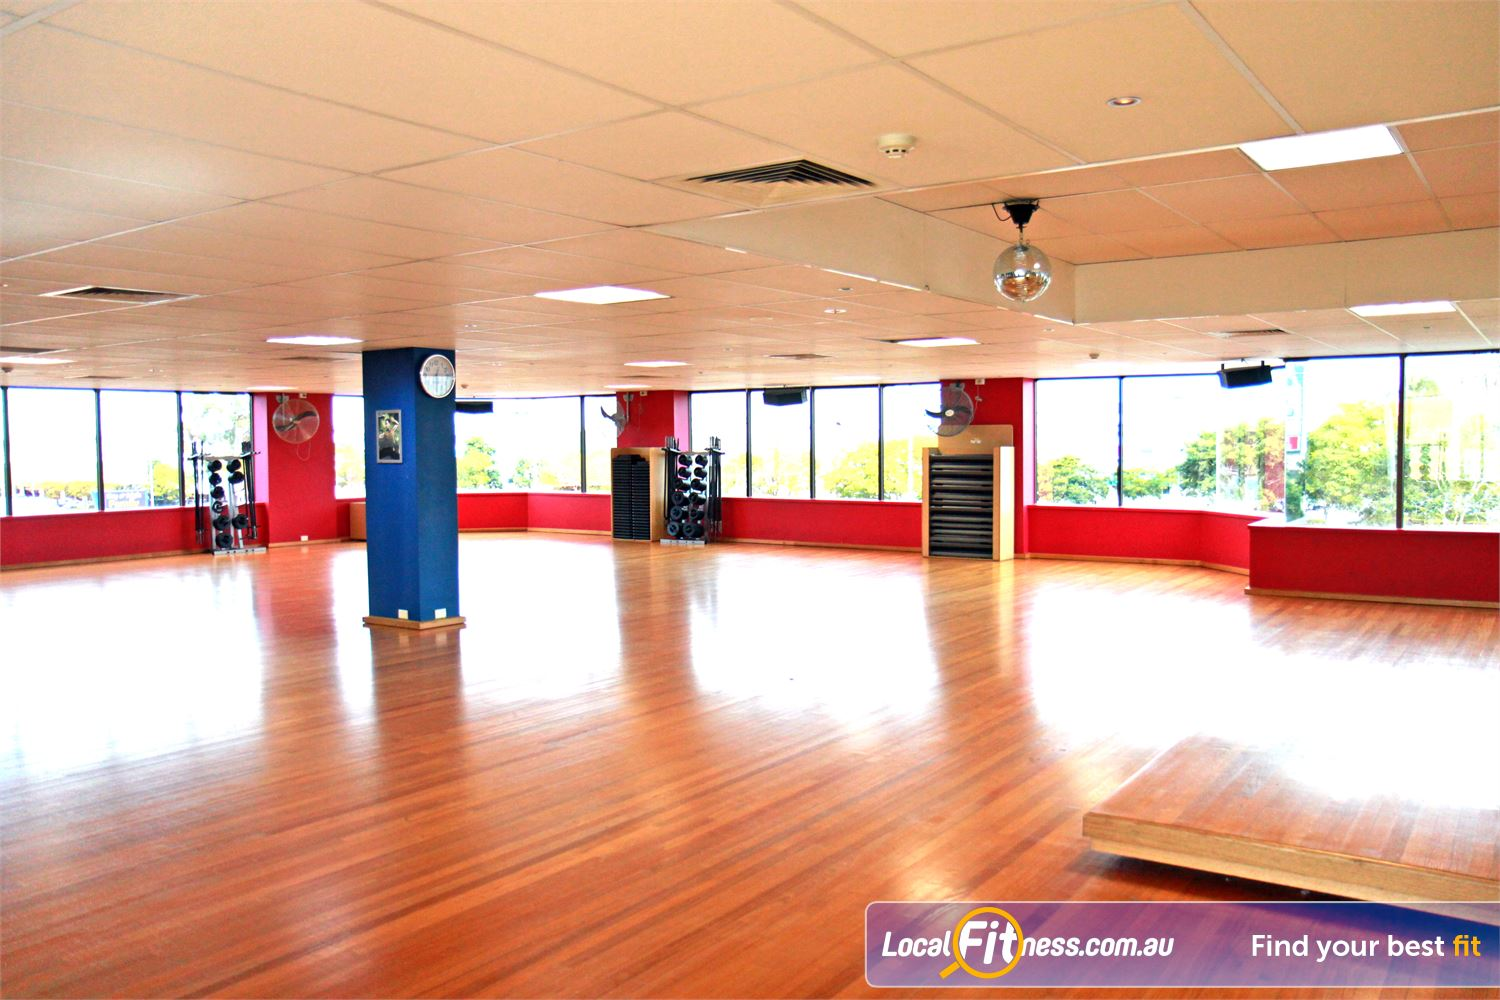 Goodlife Health Clubs Near Carina Heights The exclusive aerobics studio houses popular Mt Gravatt group fitness classes.